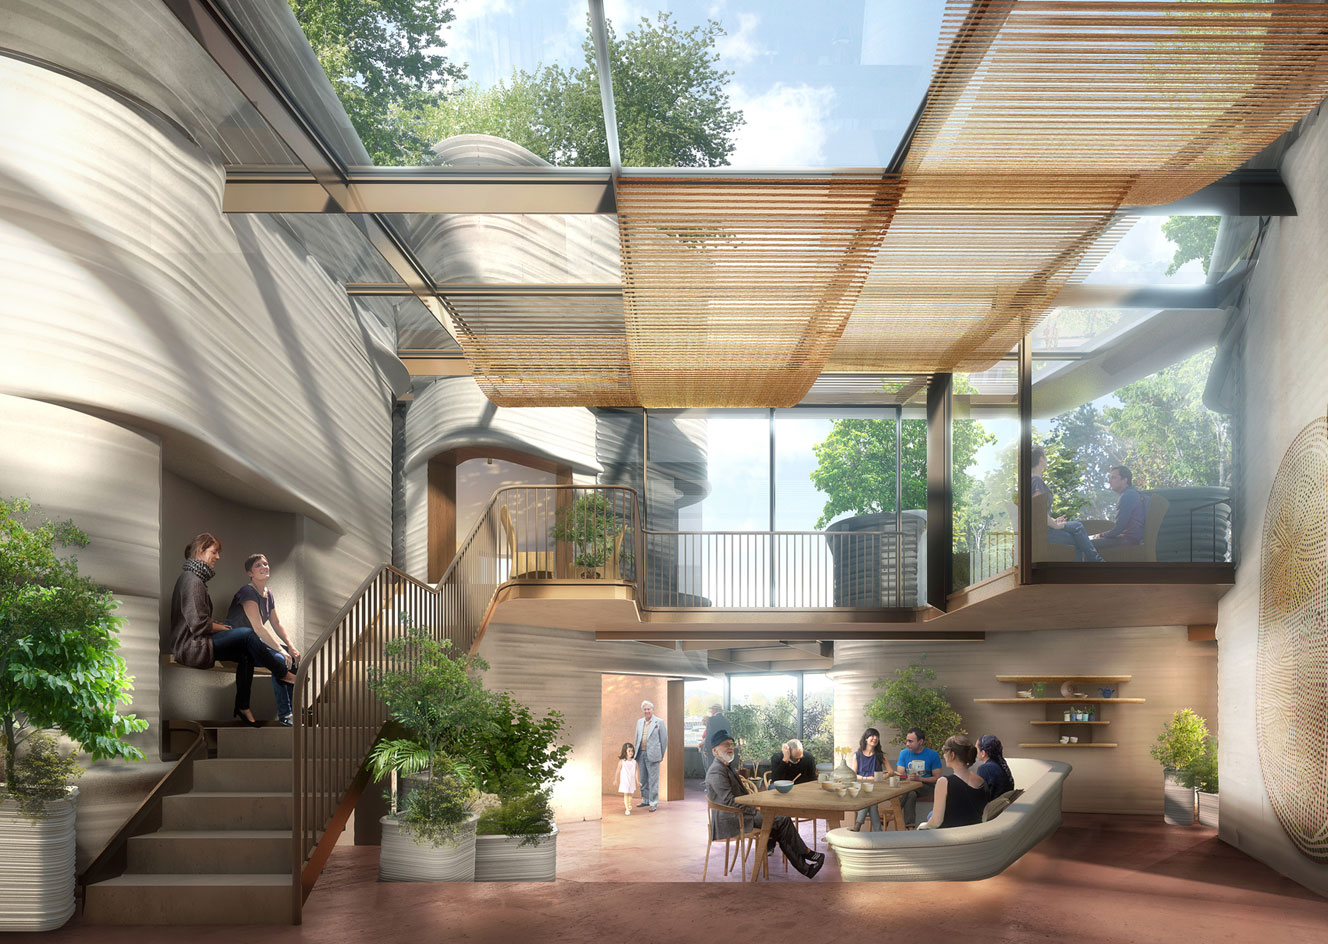 Green healing: Heatherwick Studio plans garden-wrapped ...